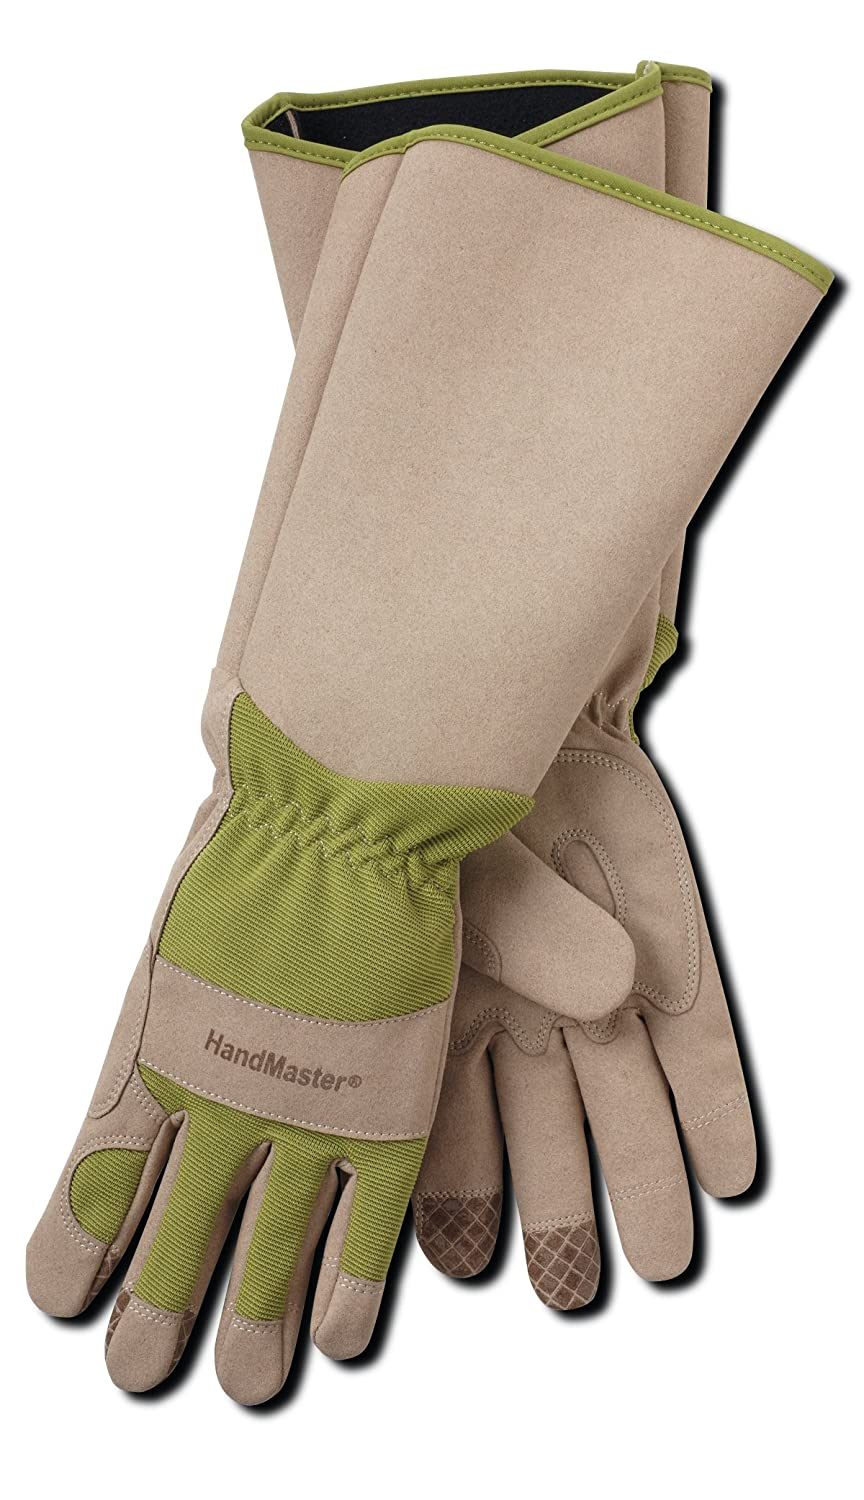 Handmaster bella men s pro rose garden glove large new for Gardening gloves amazon